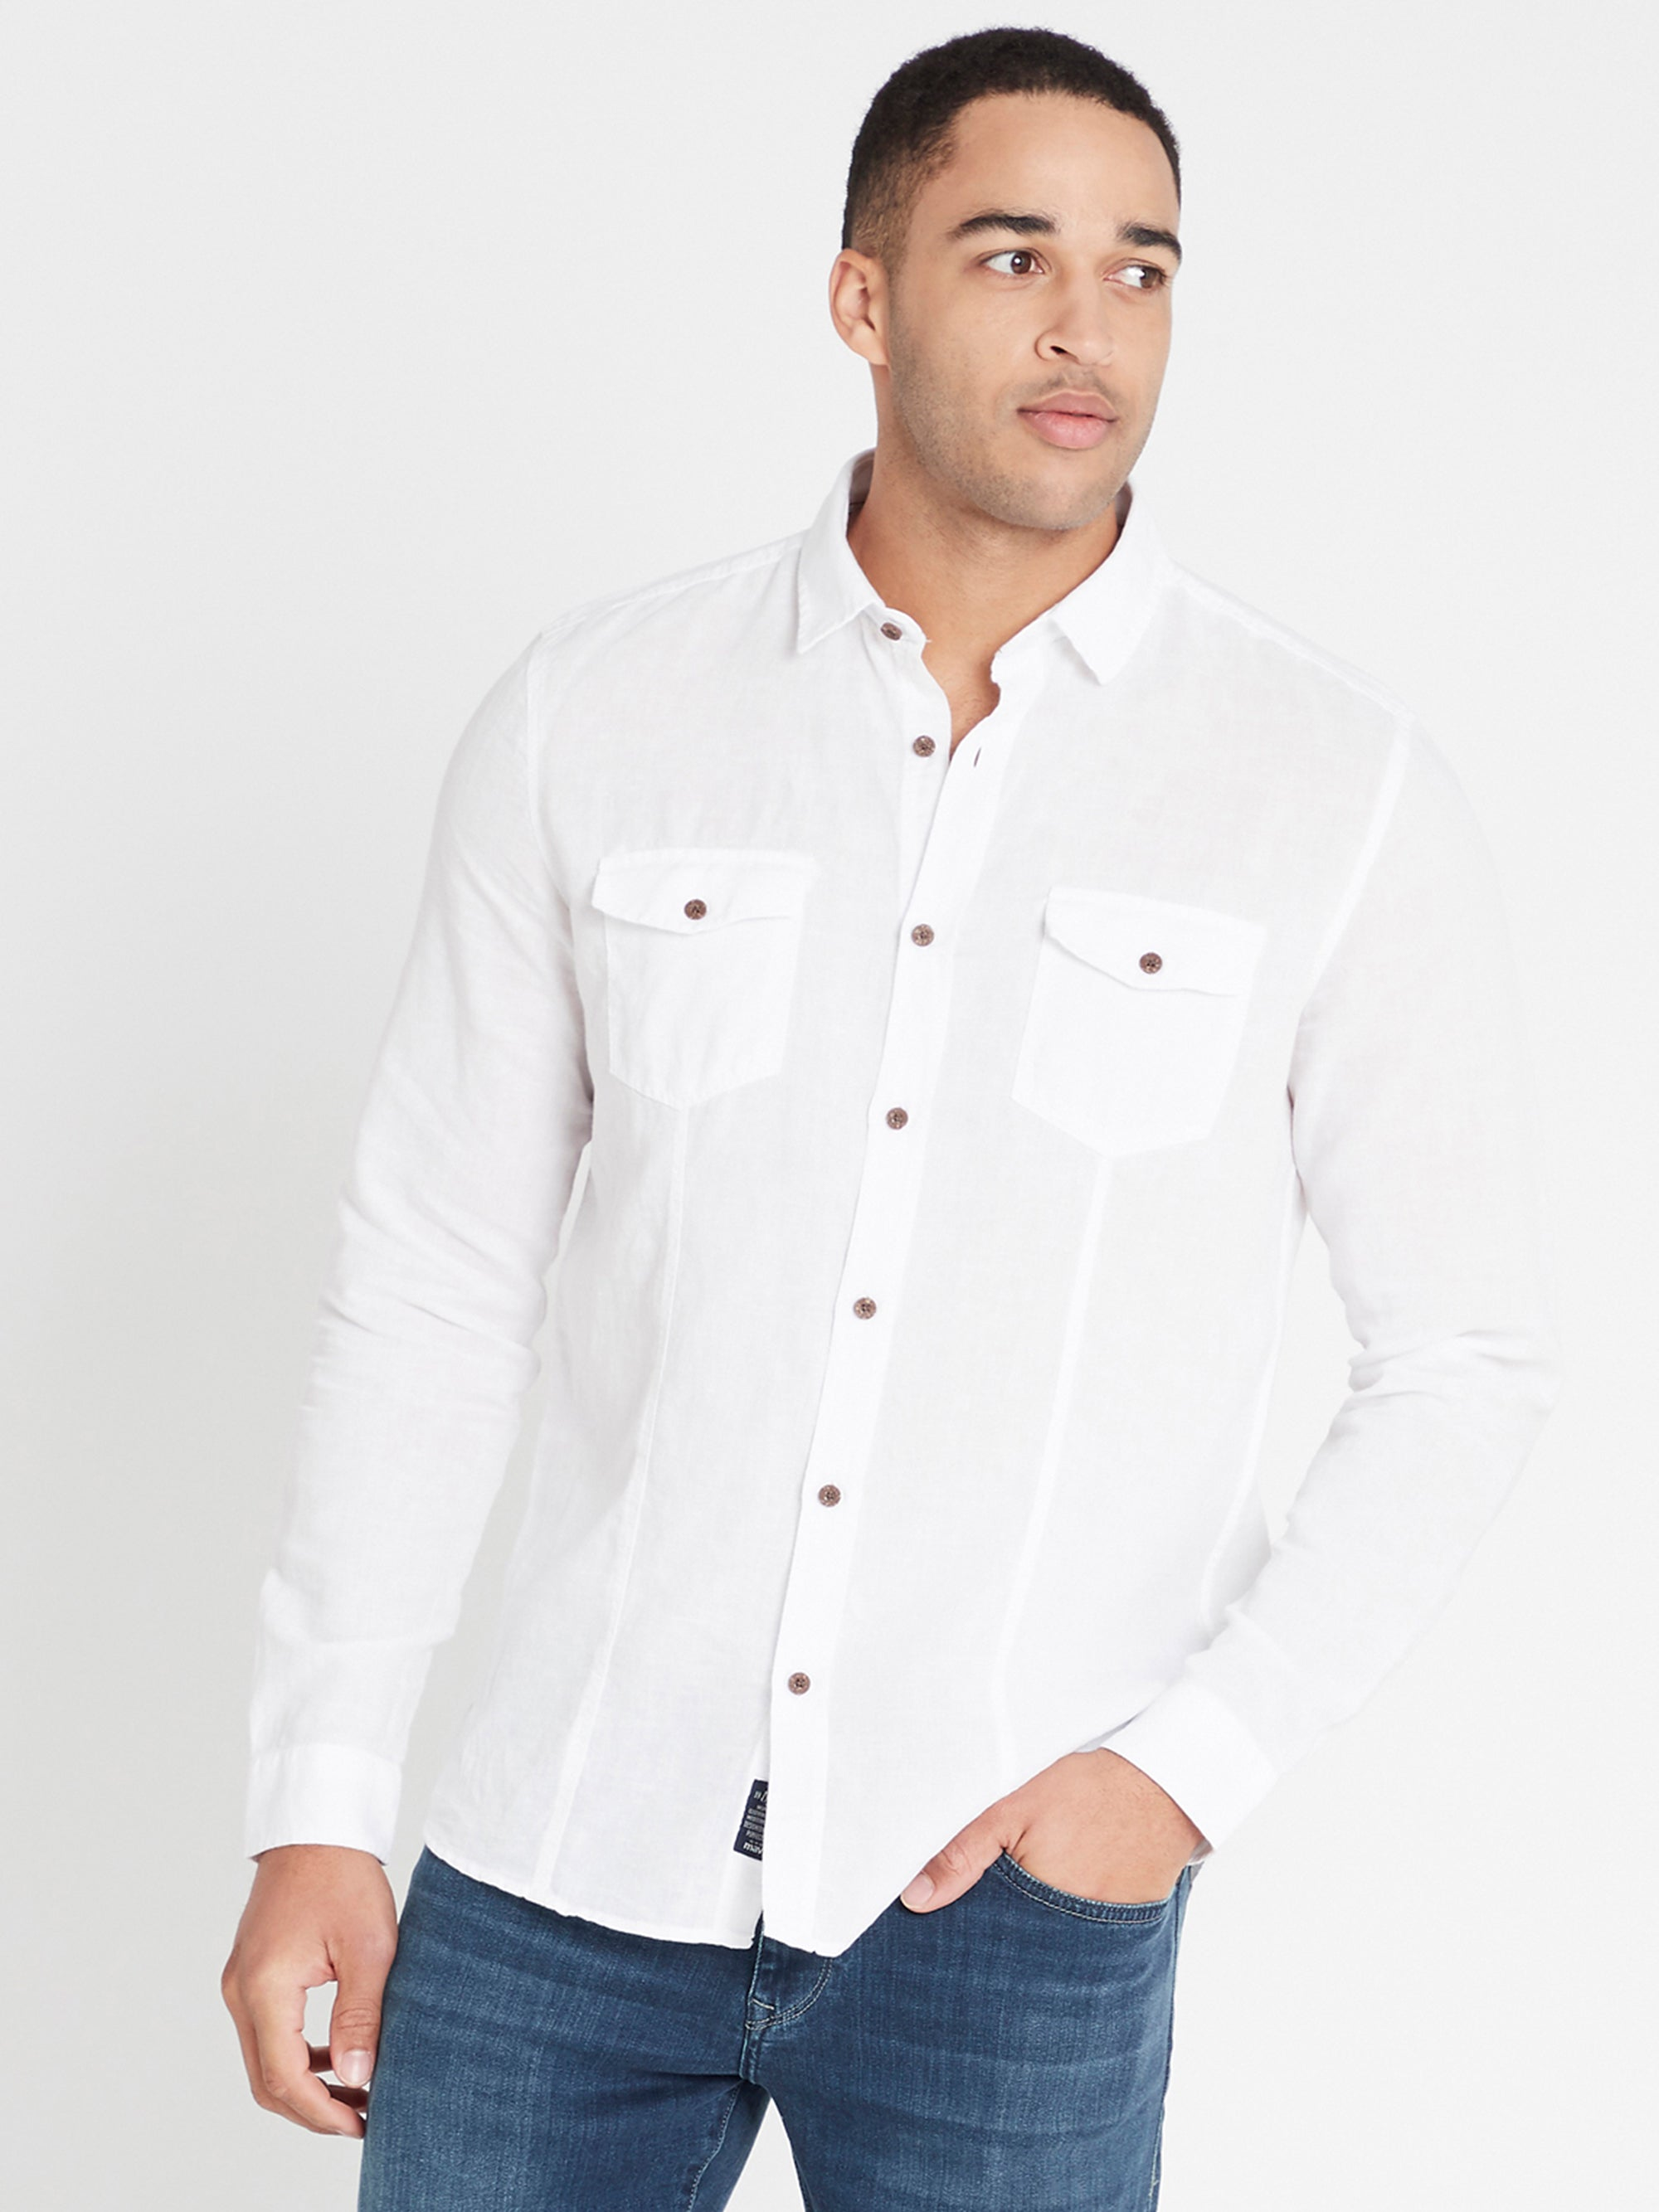 Mens Long Sleeve Shirt White